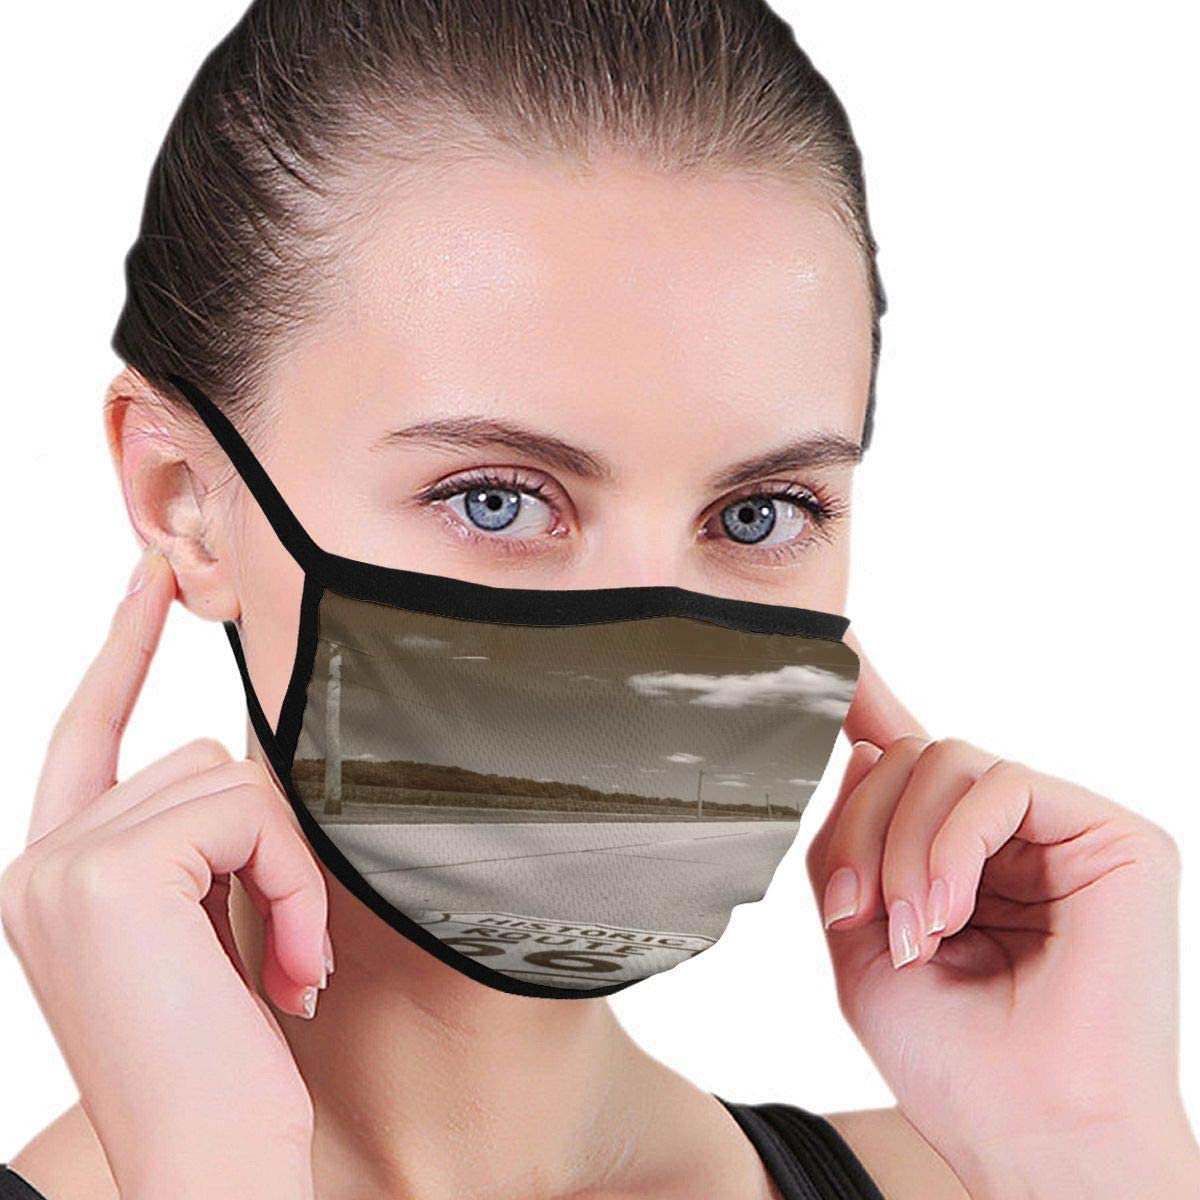 Doumku Mouth Cover Route 66 Shield Old Picture Dust Breathable Reusable Ear Loop Mouth Protection Cover For Men Women